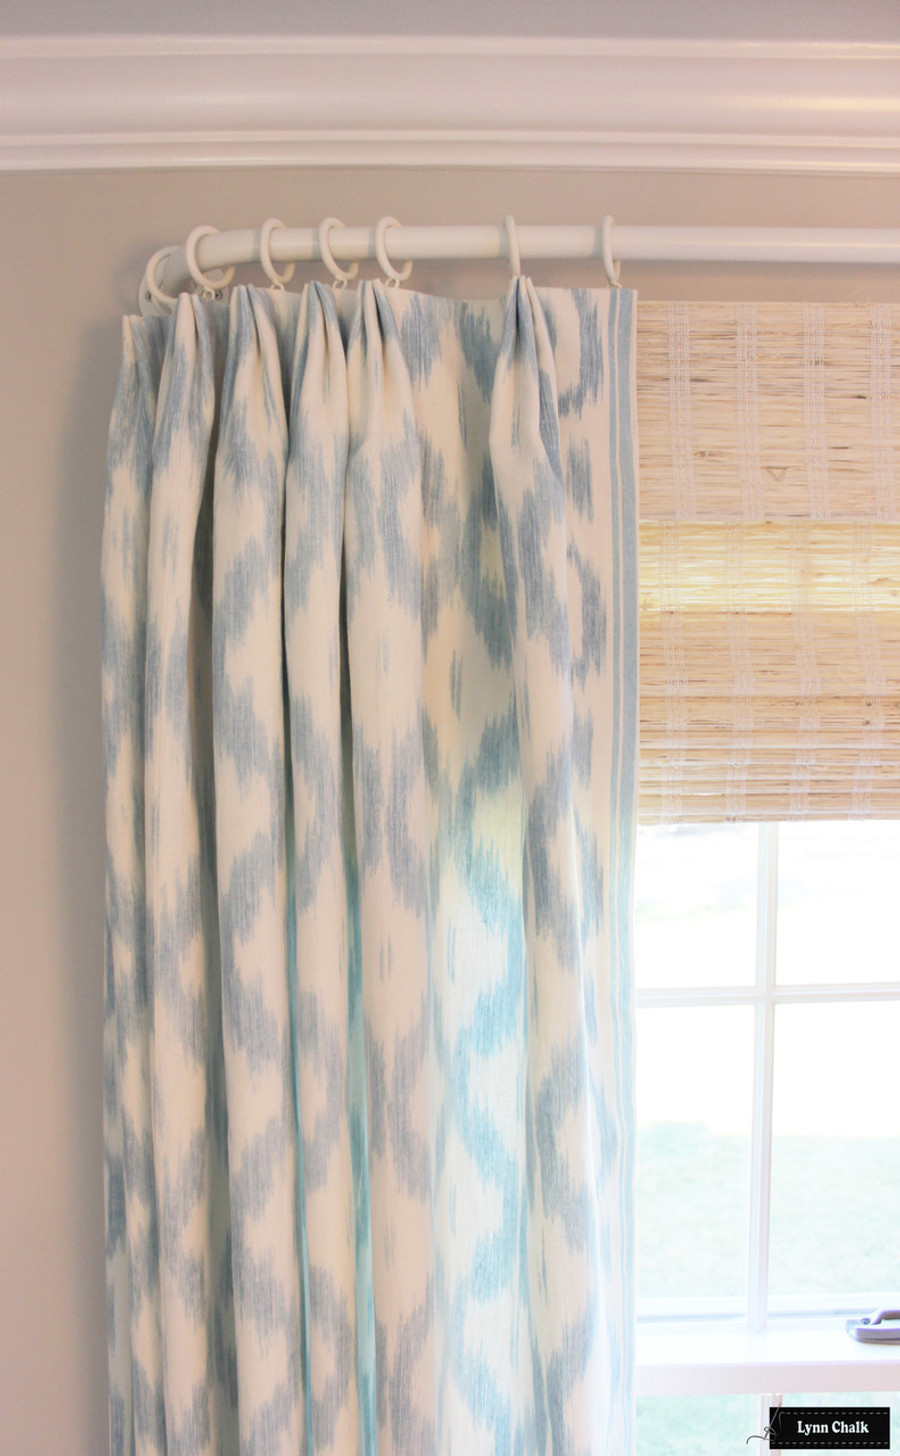 Schumacher Santa Monica Ikat Drapes with Helser Brother French Poles in Alabaster